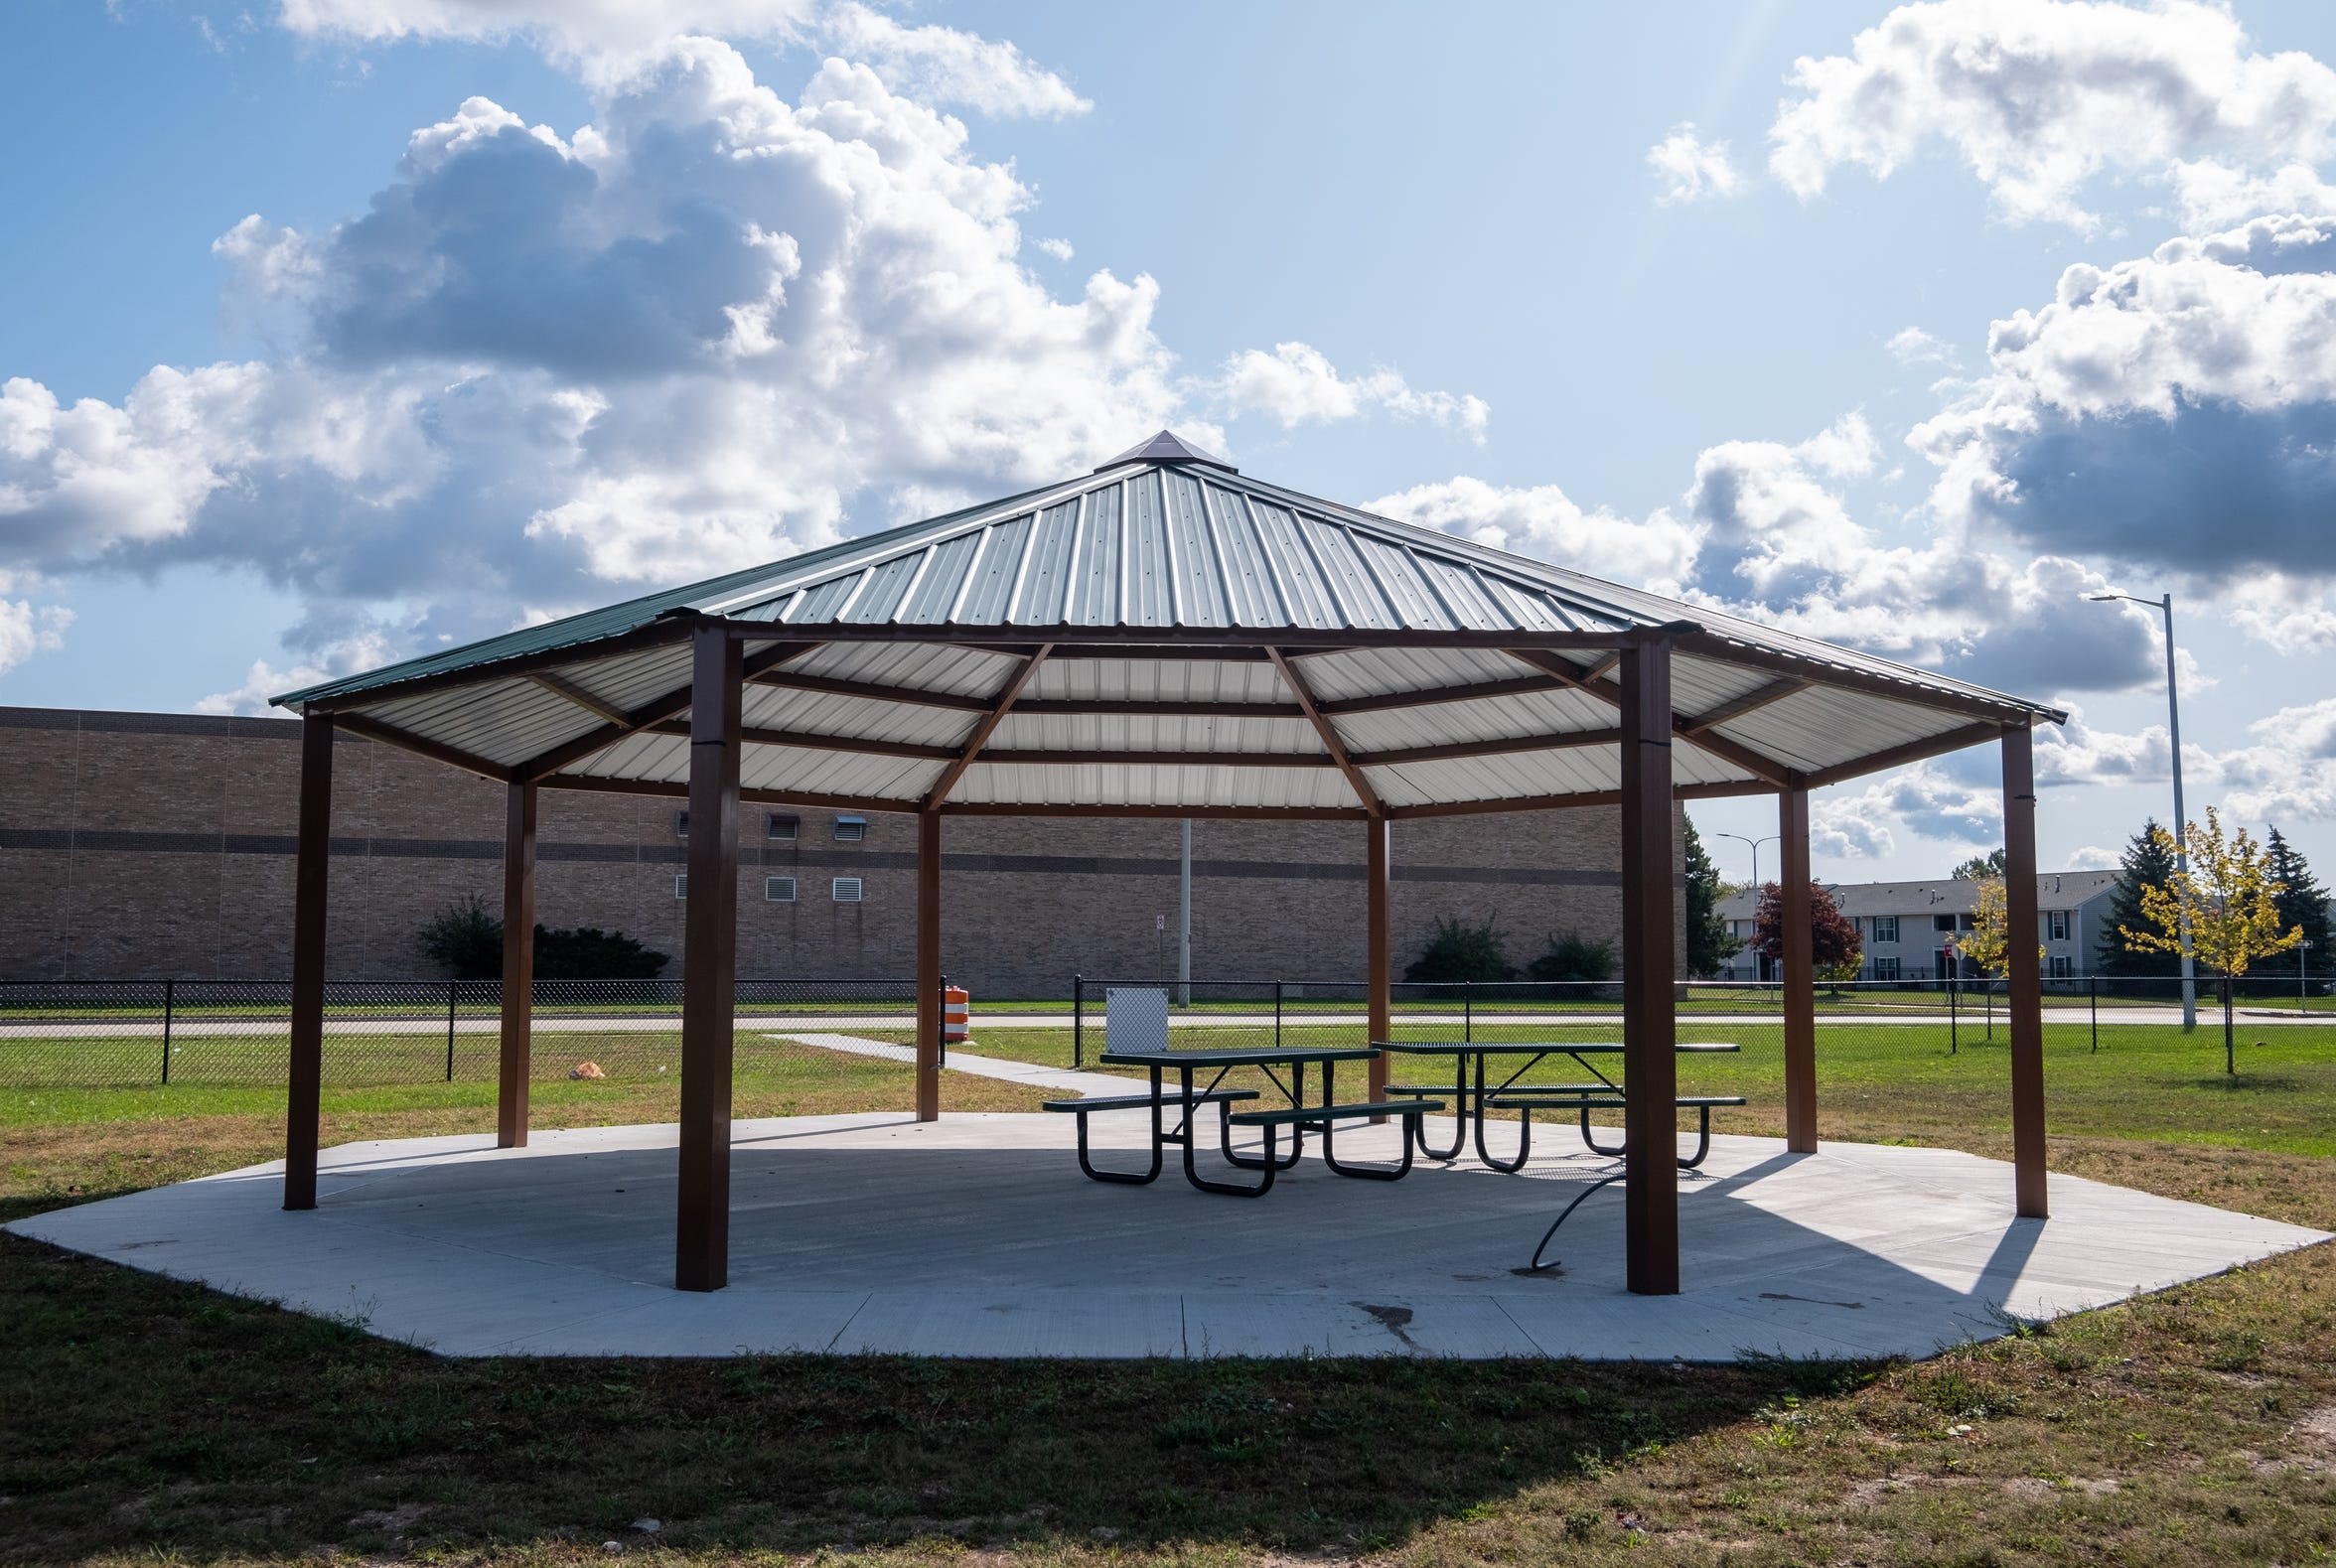 Through the 1-mill tax approved by voters in 2017, the city was able to build a pavilion at Knox Field, in addition to maintenance and repairs at other facilities.